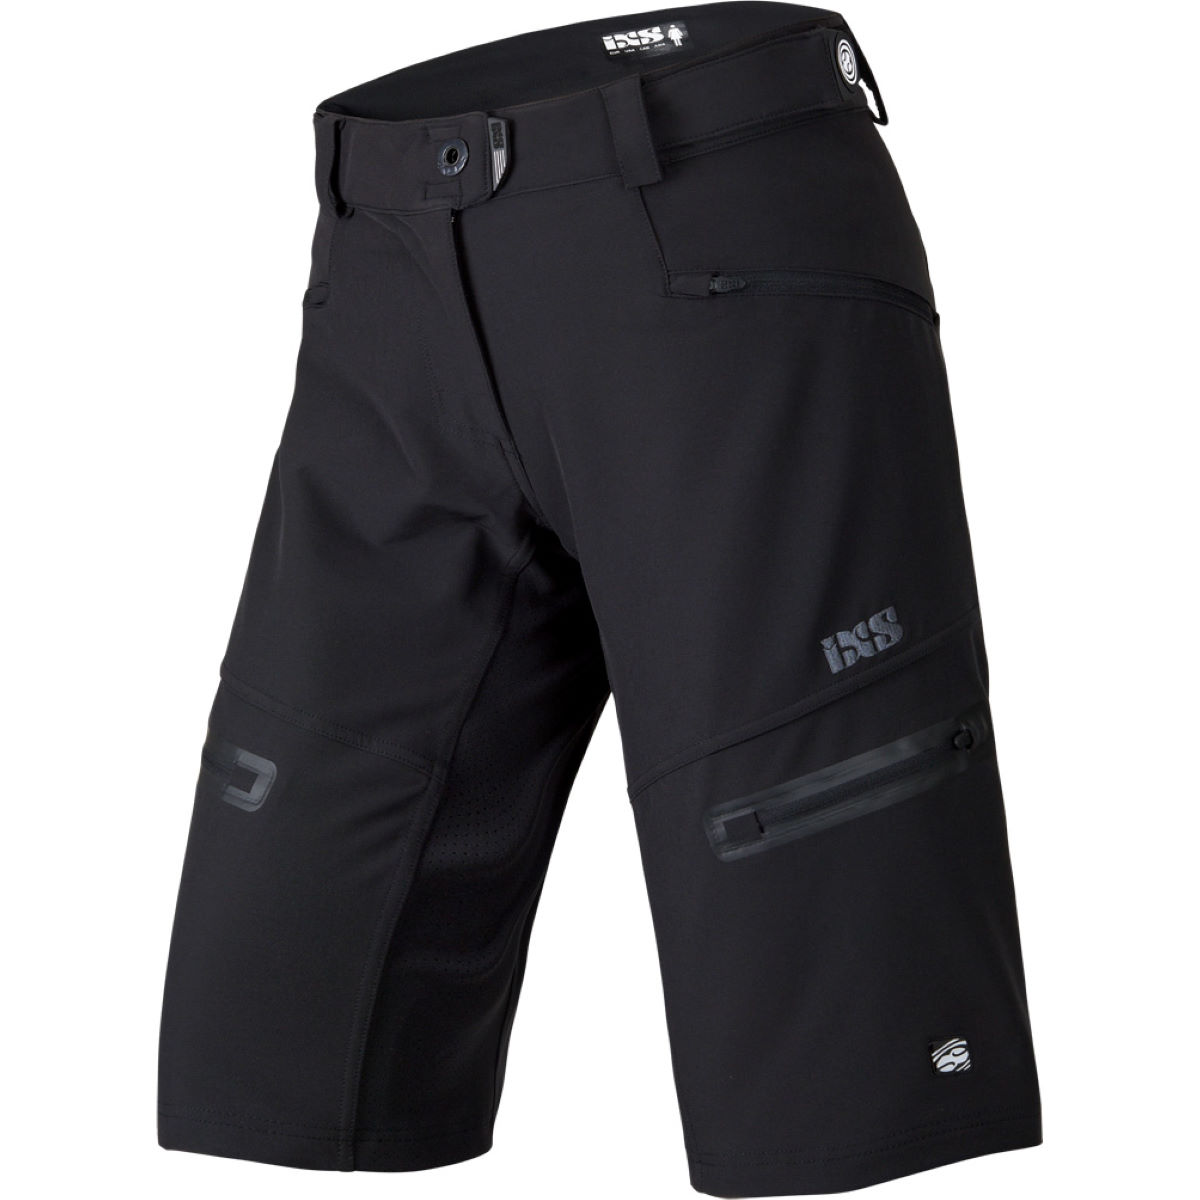 IXS IXS Womens Sever 6.1 Shorts   Baggy Shorts